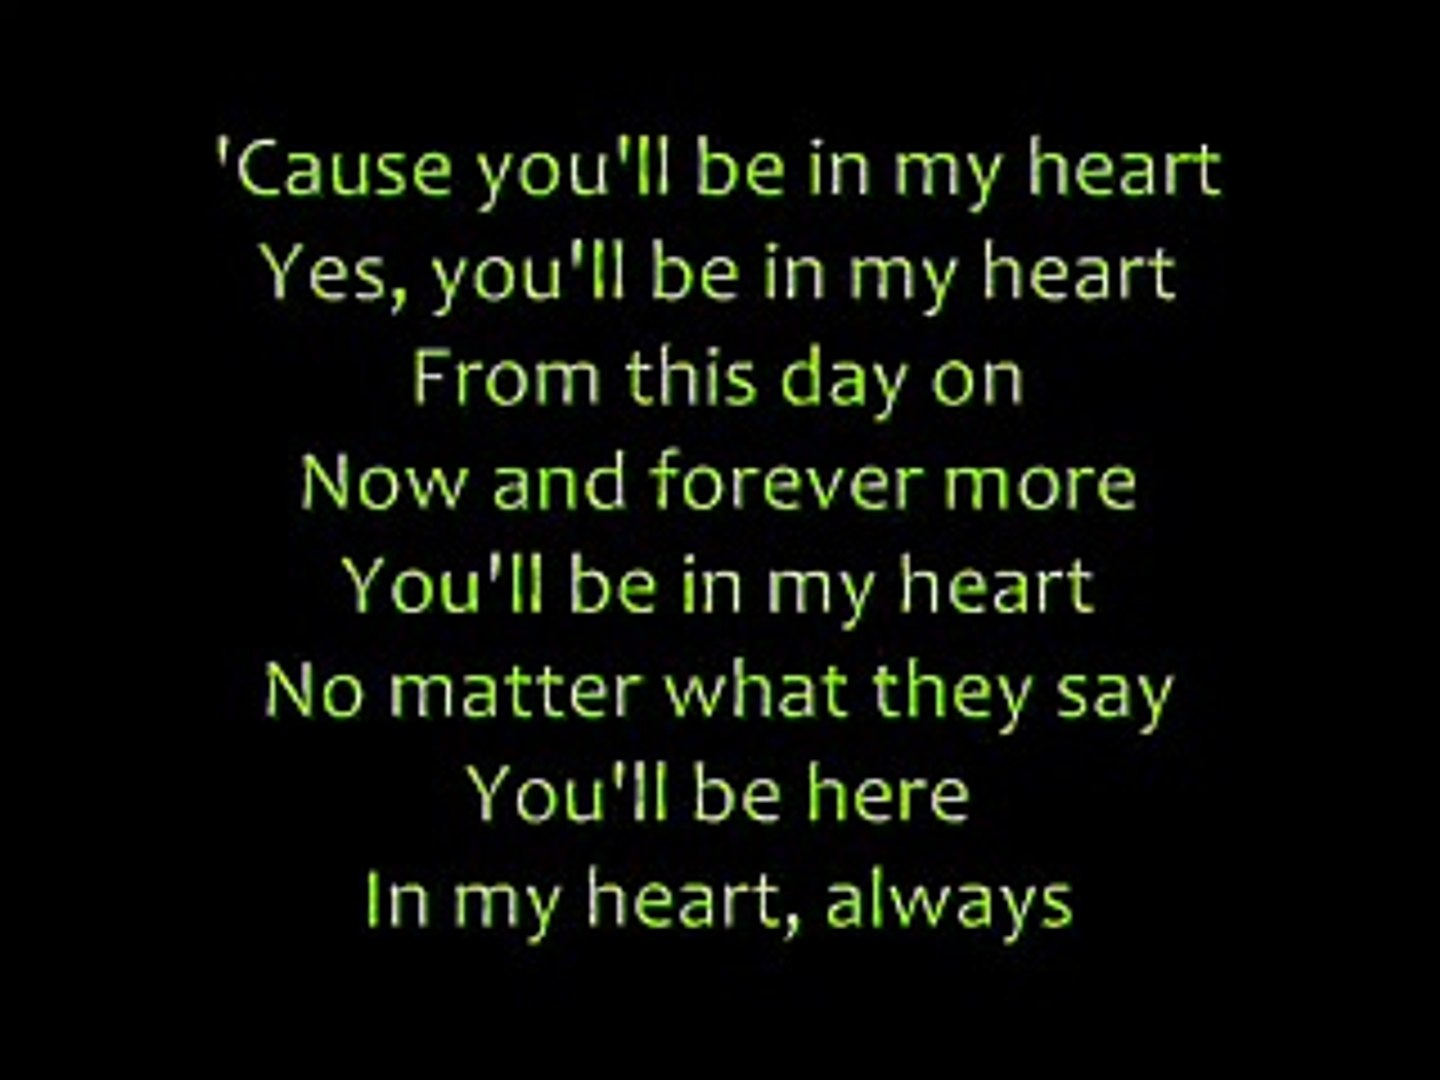 Phil Collins - You'll Be In My Heart with Lyrics - Vidéo Dailymotion